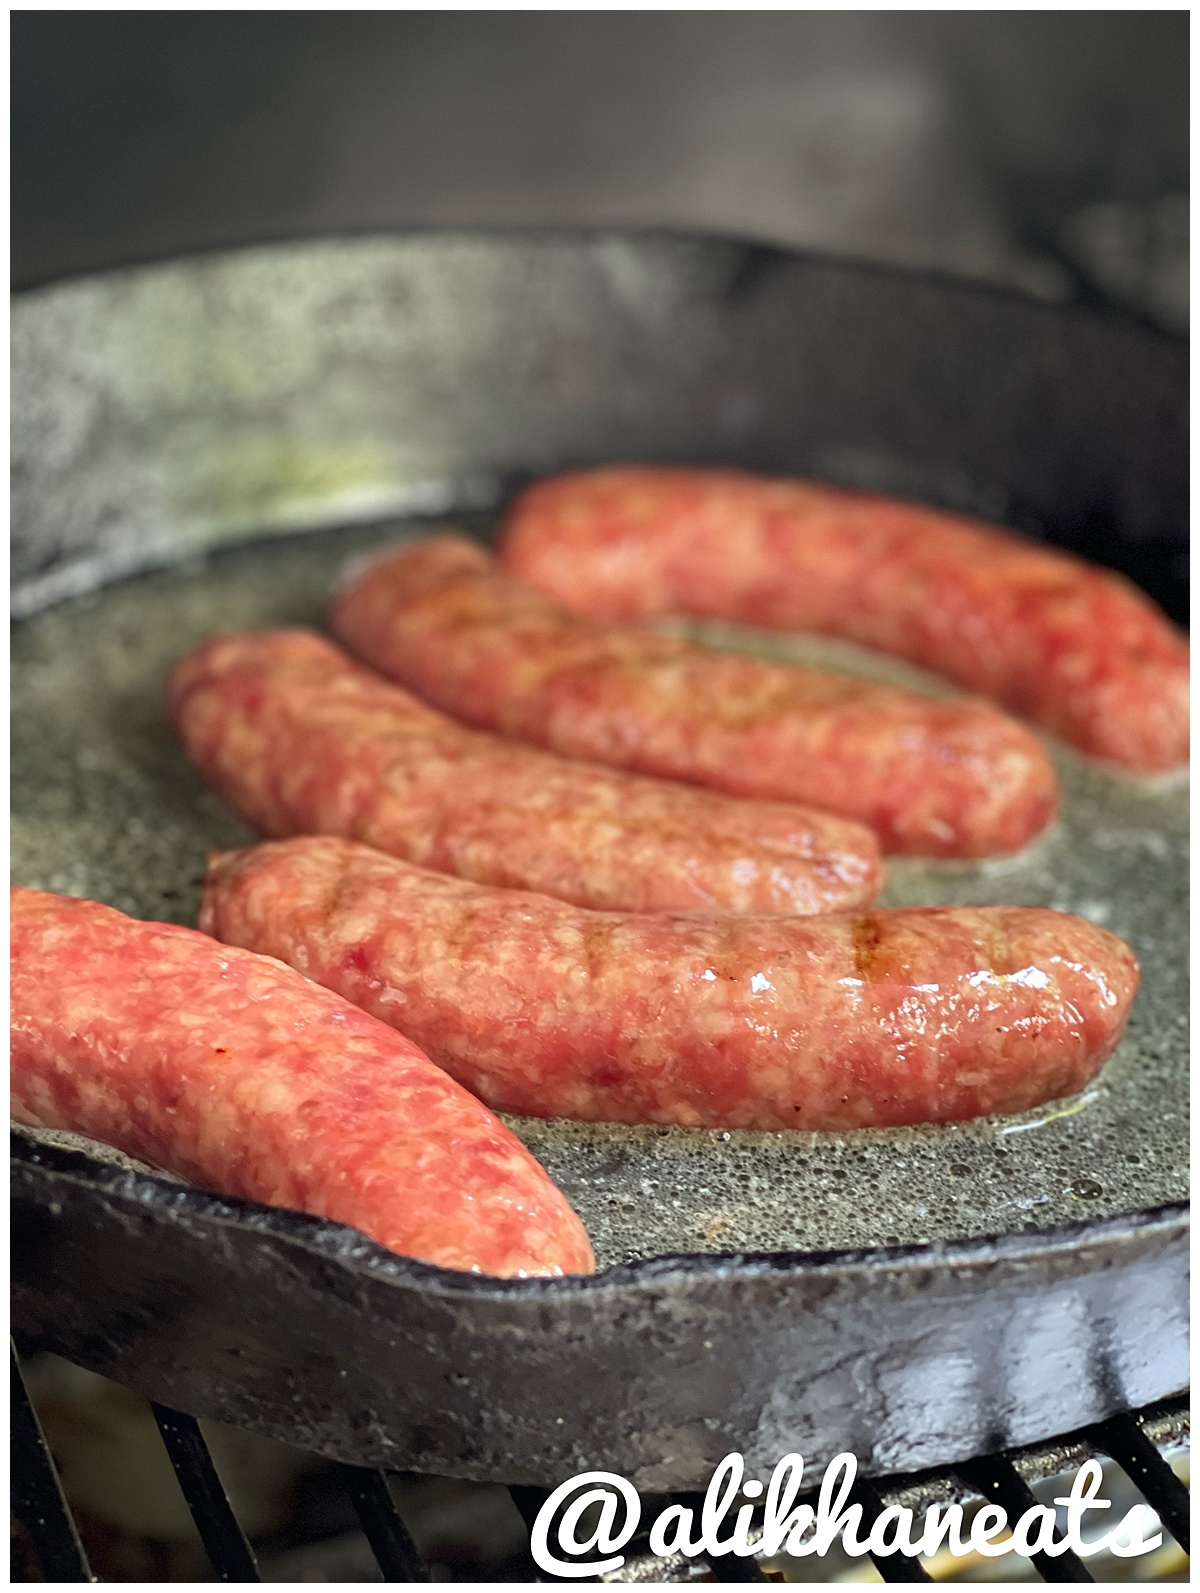 Brats simmering in butter and beer